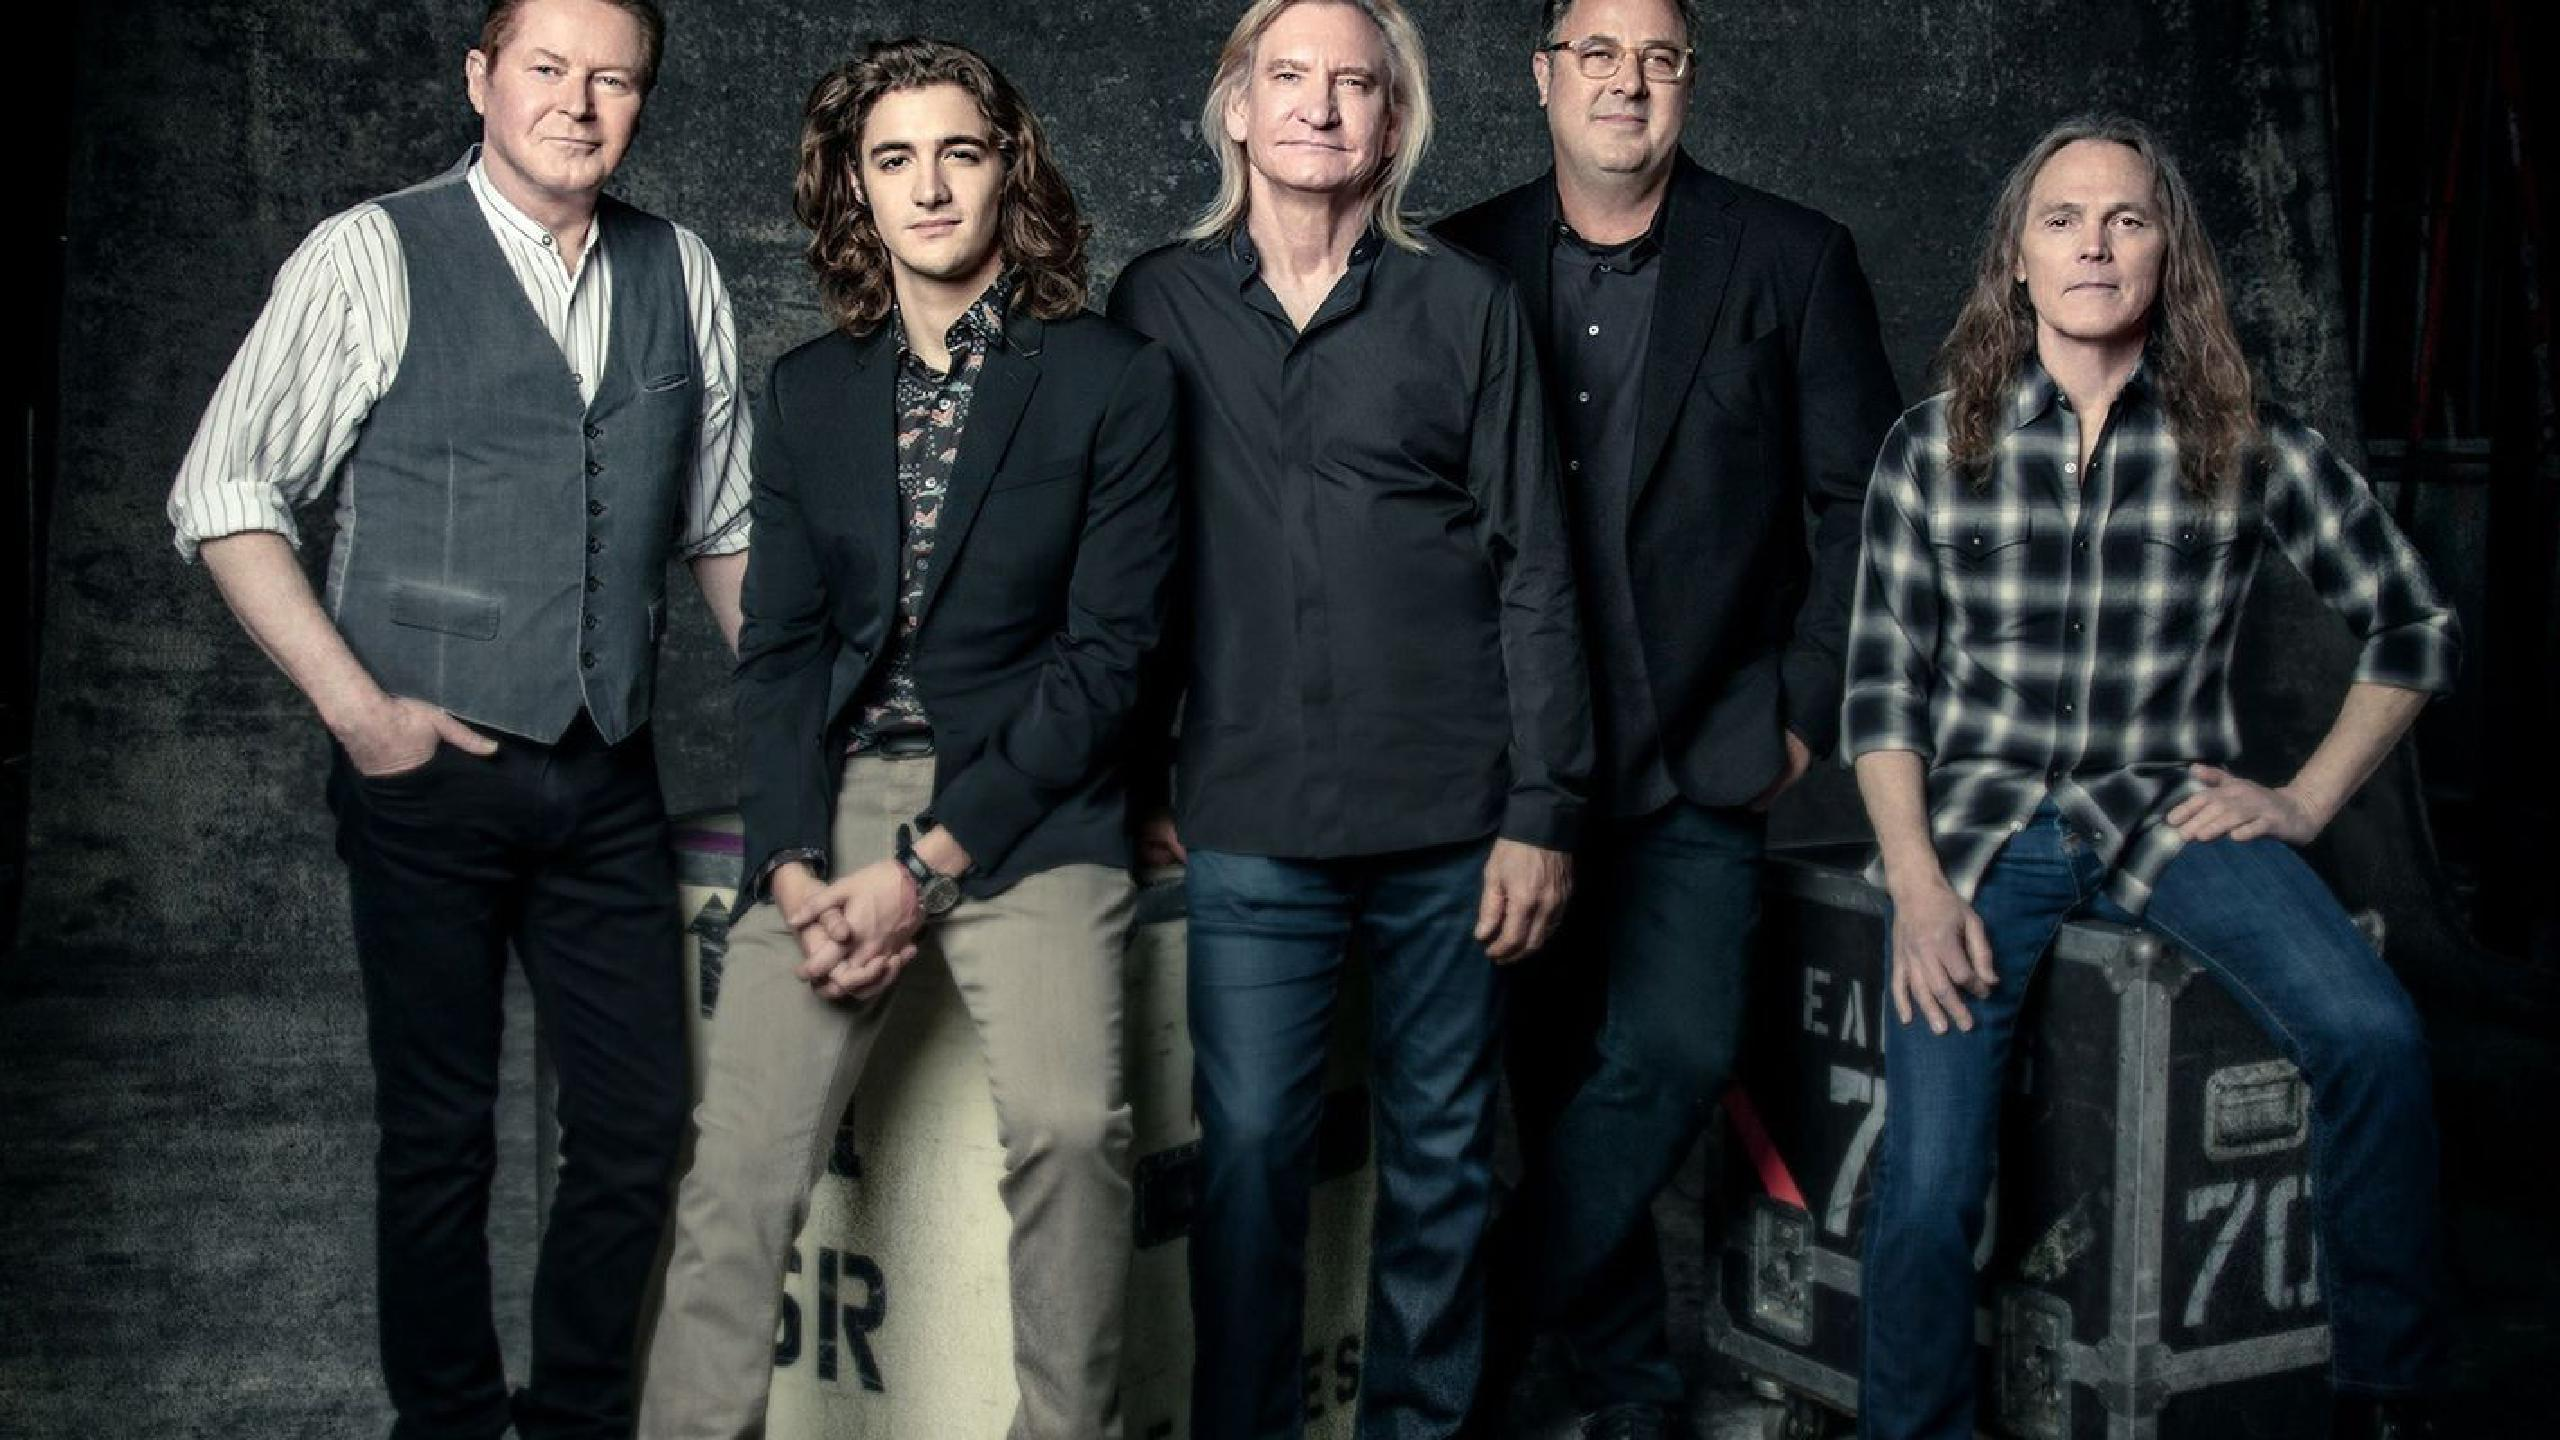 Eagles Tour Dates 2020.Eagles Tour Dates 2019 2020 Eagles Tickets And Concerts